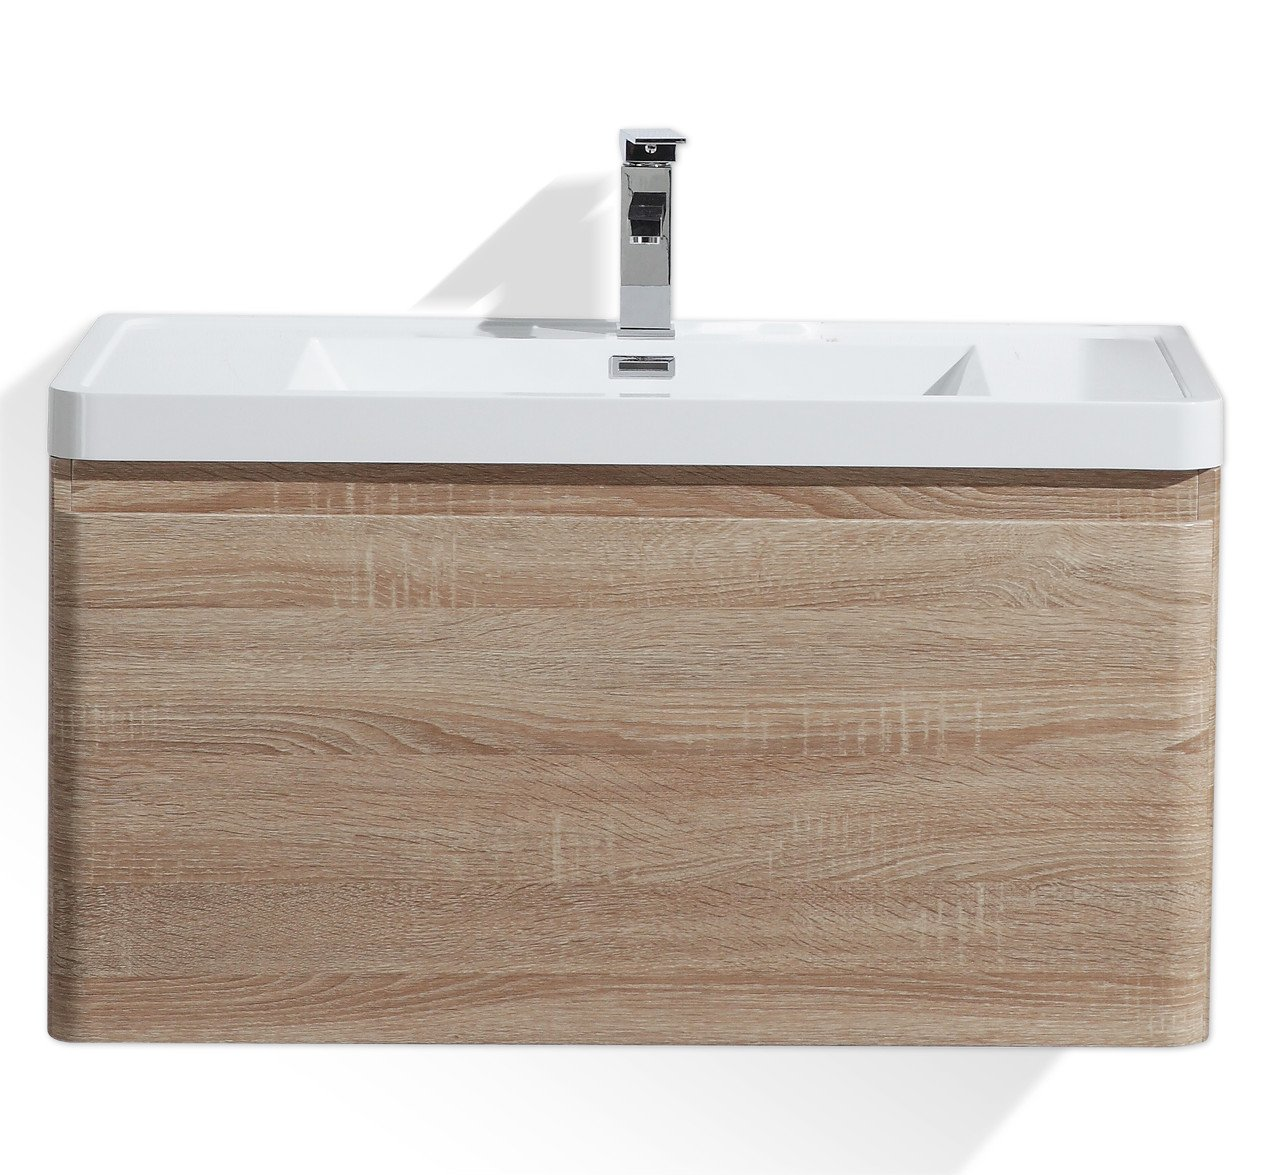 Lucky 36''Wall Mounted Modern Bathroom Vanity Sets with Acrylic Sink (White Oak) by Tona